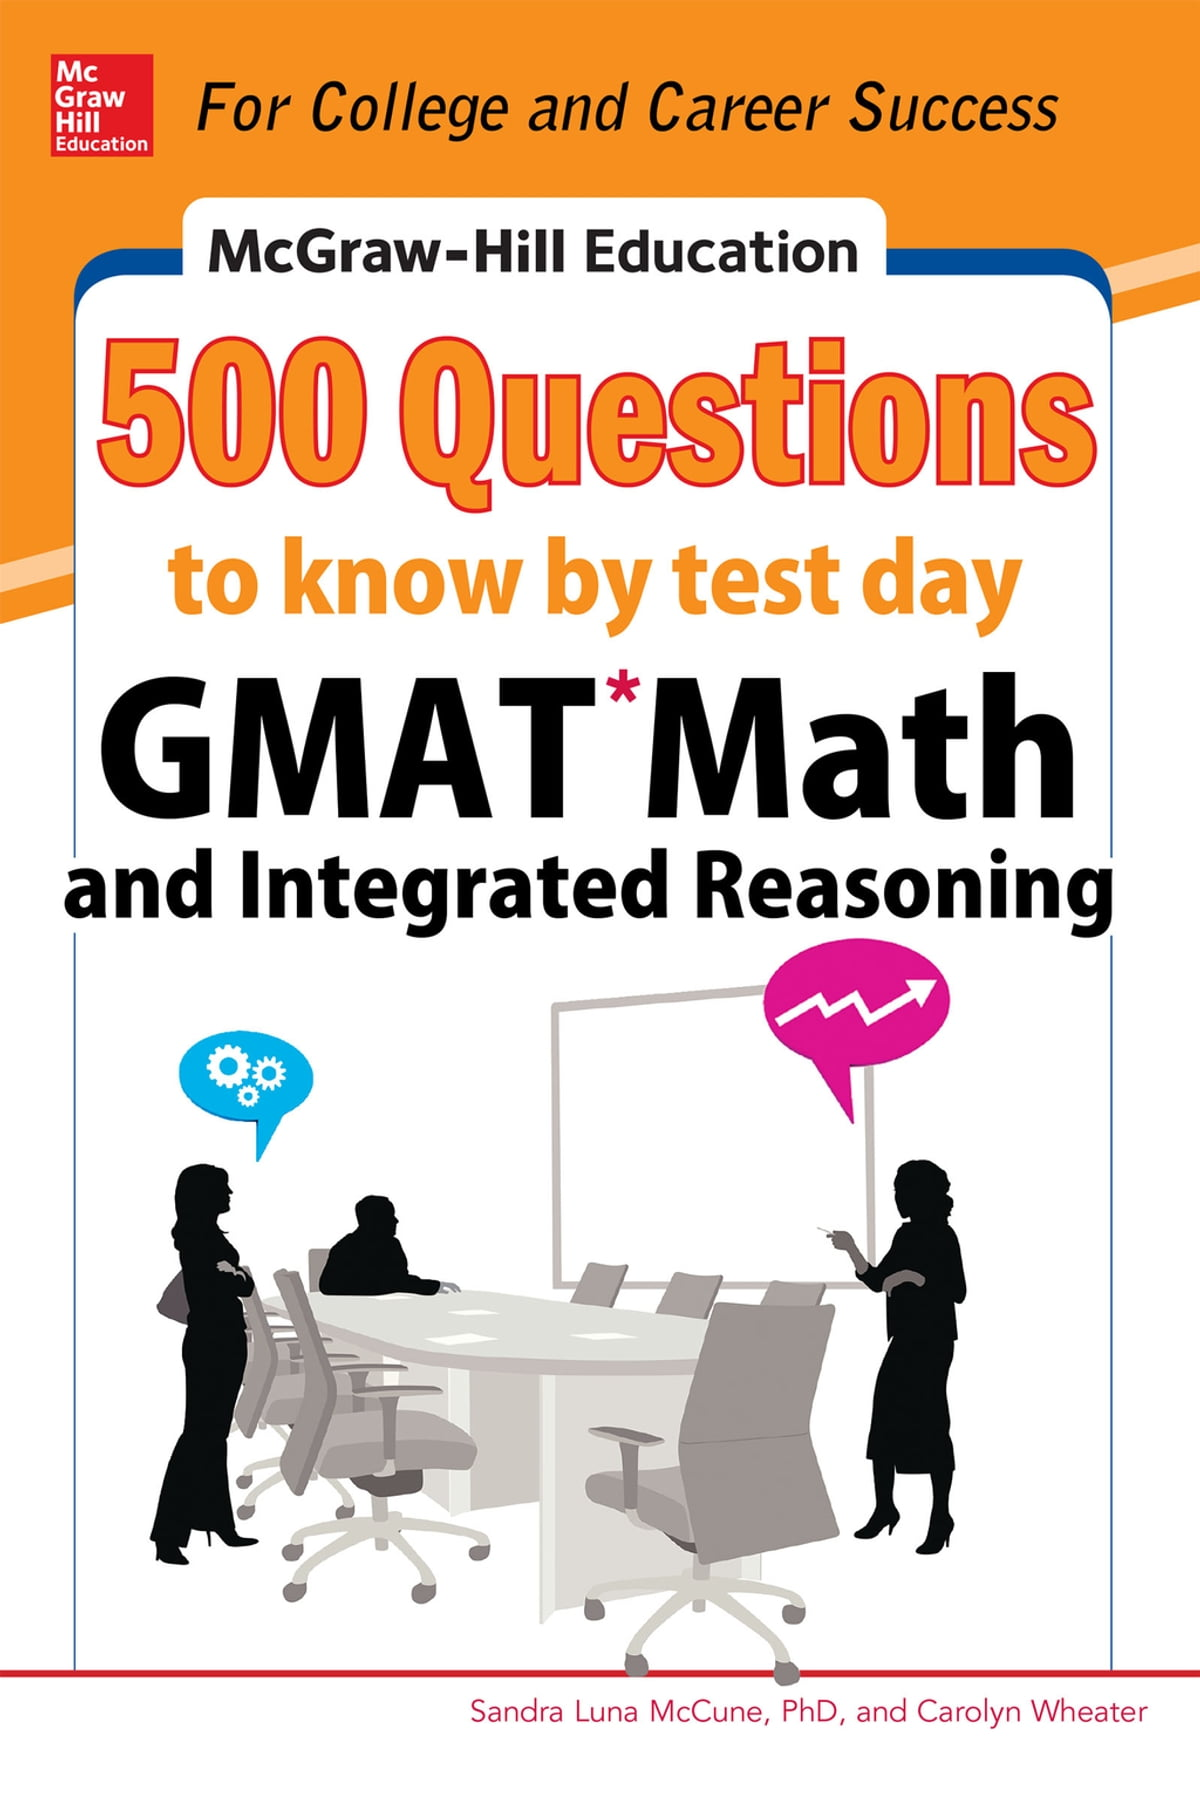 McGraw-Hill Education 500 GMAT Math and Integrated Reasoning Questions to  Know by Test Day eBook by Sandra Luna McCune - 9780071812191 | Rakuten Kobo